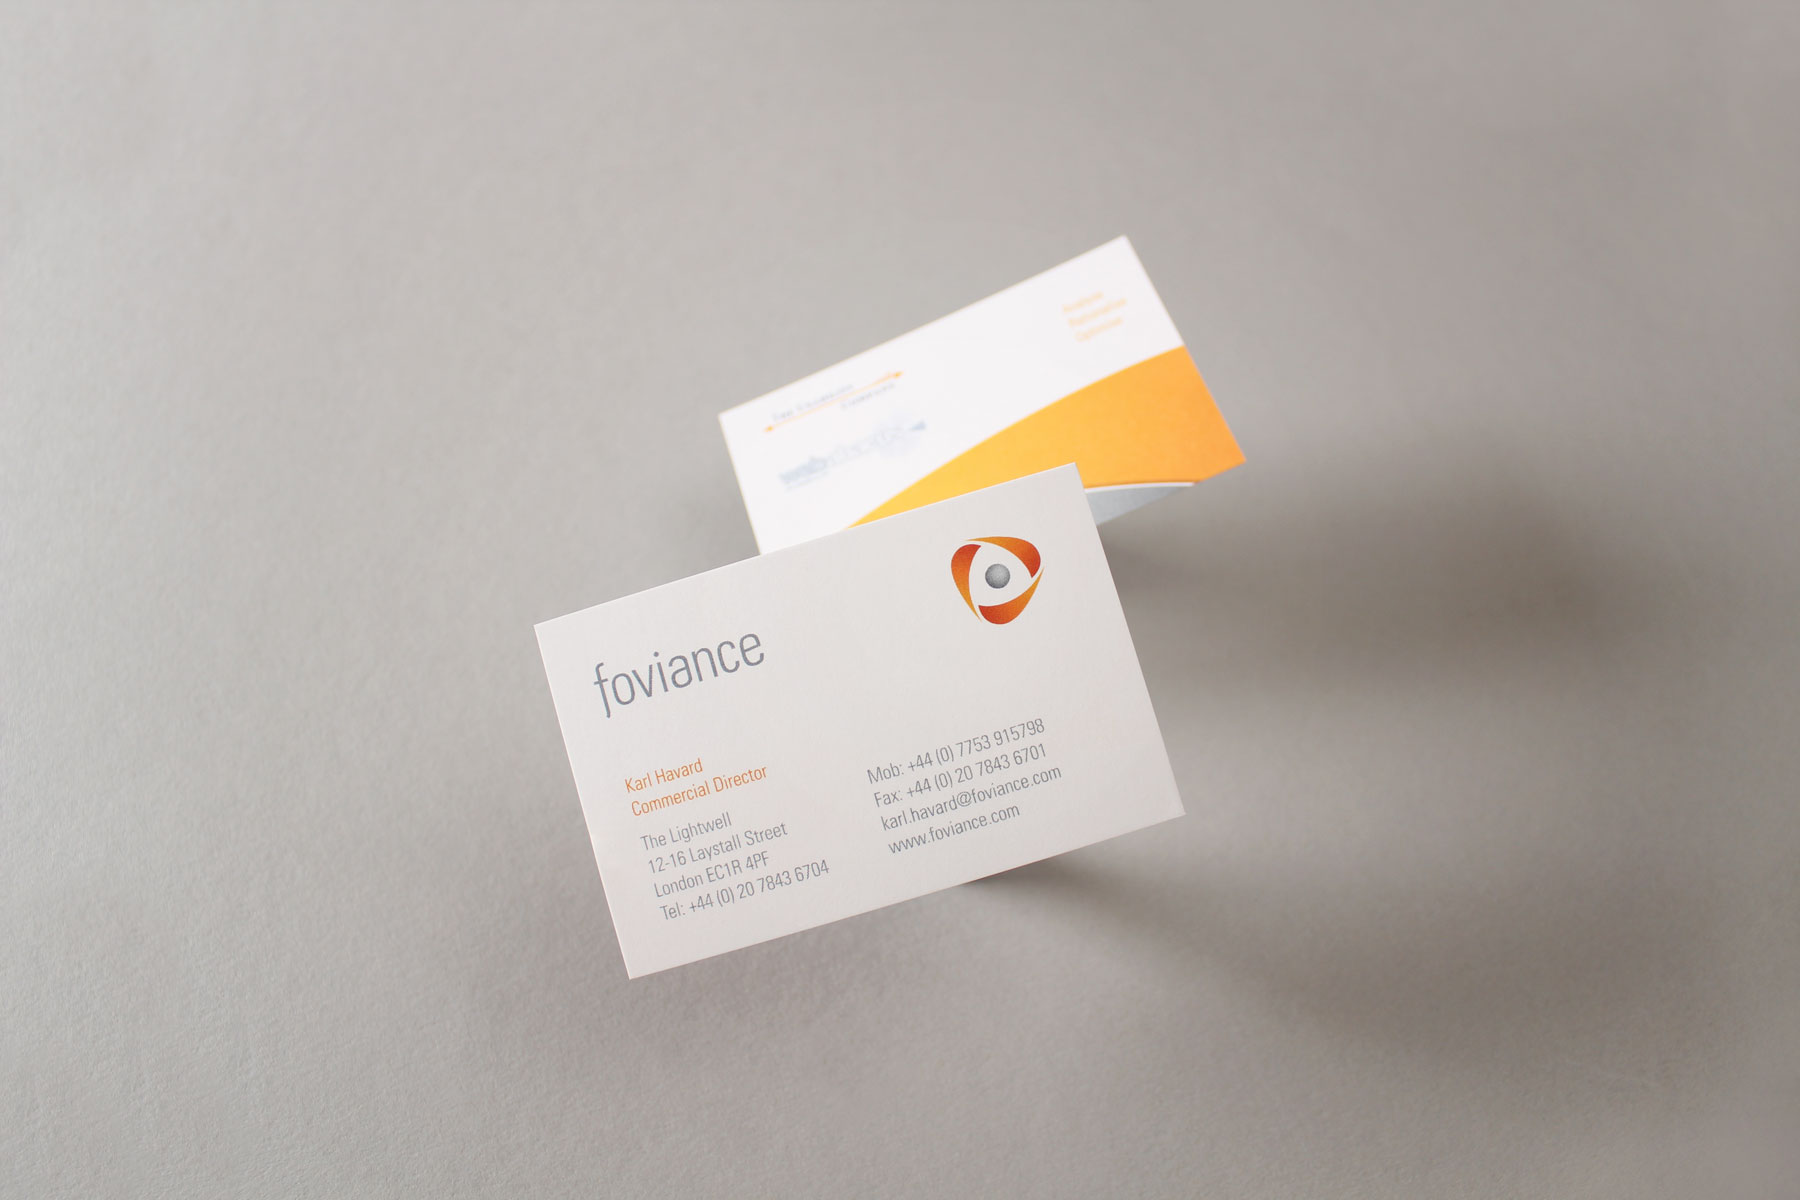 For the primary business communications, this graphic identity was restricted to sweeping arcs of alternative brand colours.